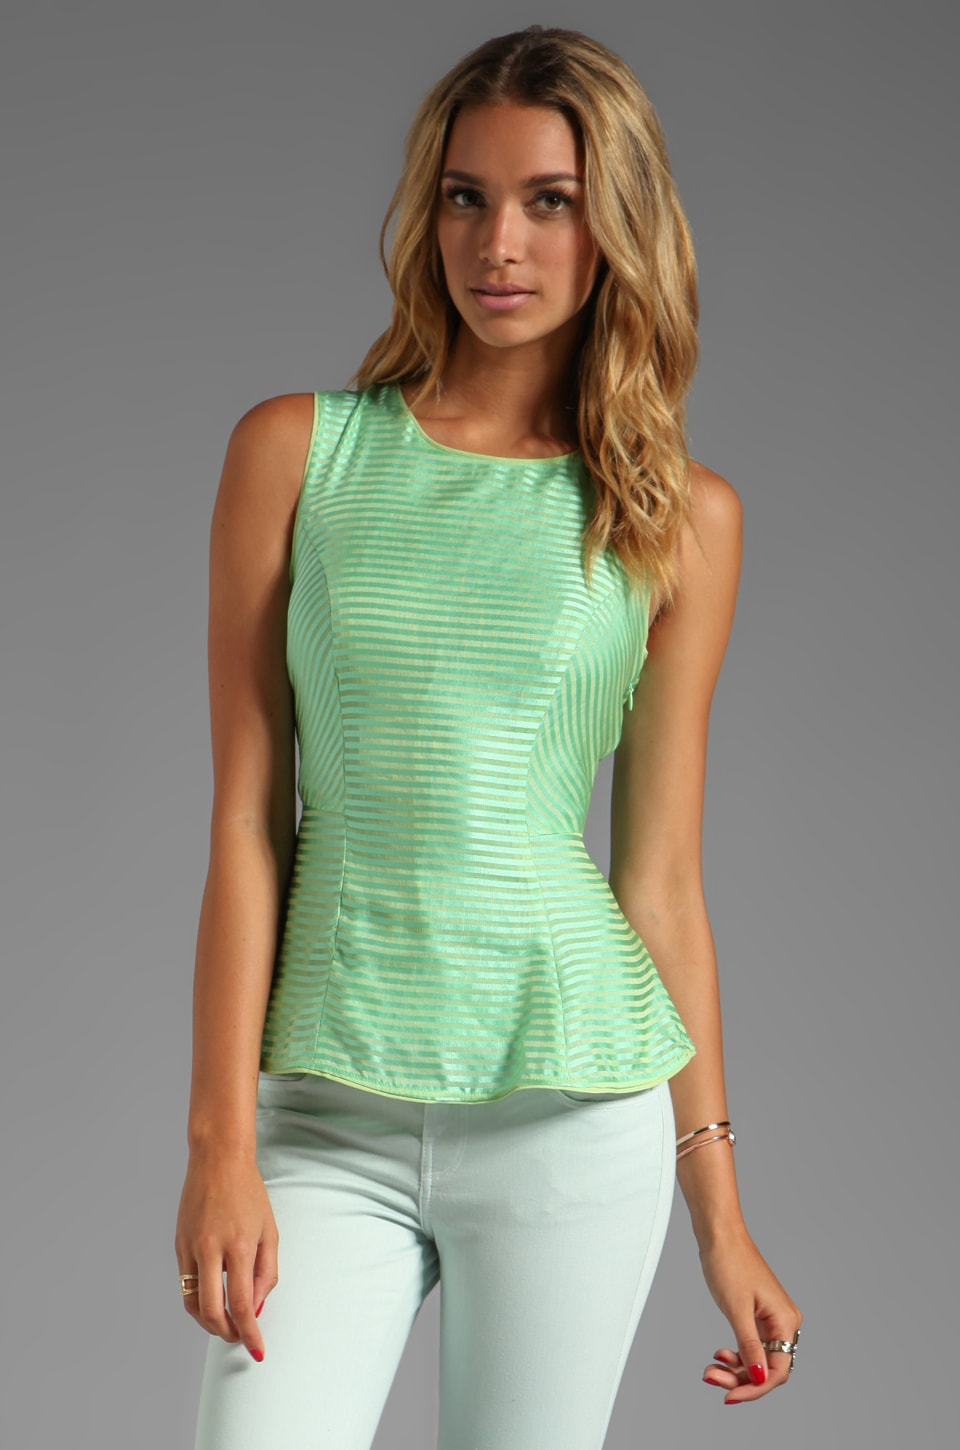 harlyn Peplum Tank in Spearmint Stripe